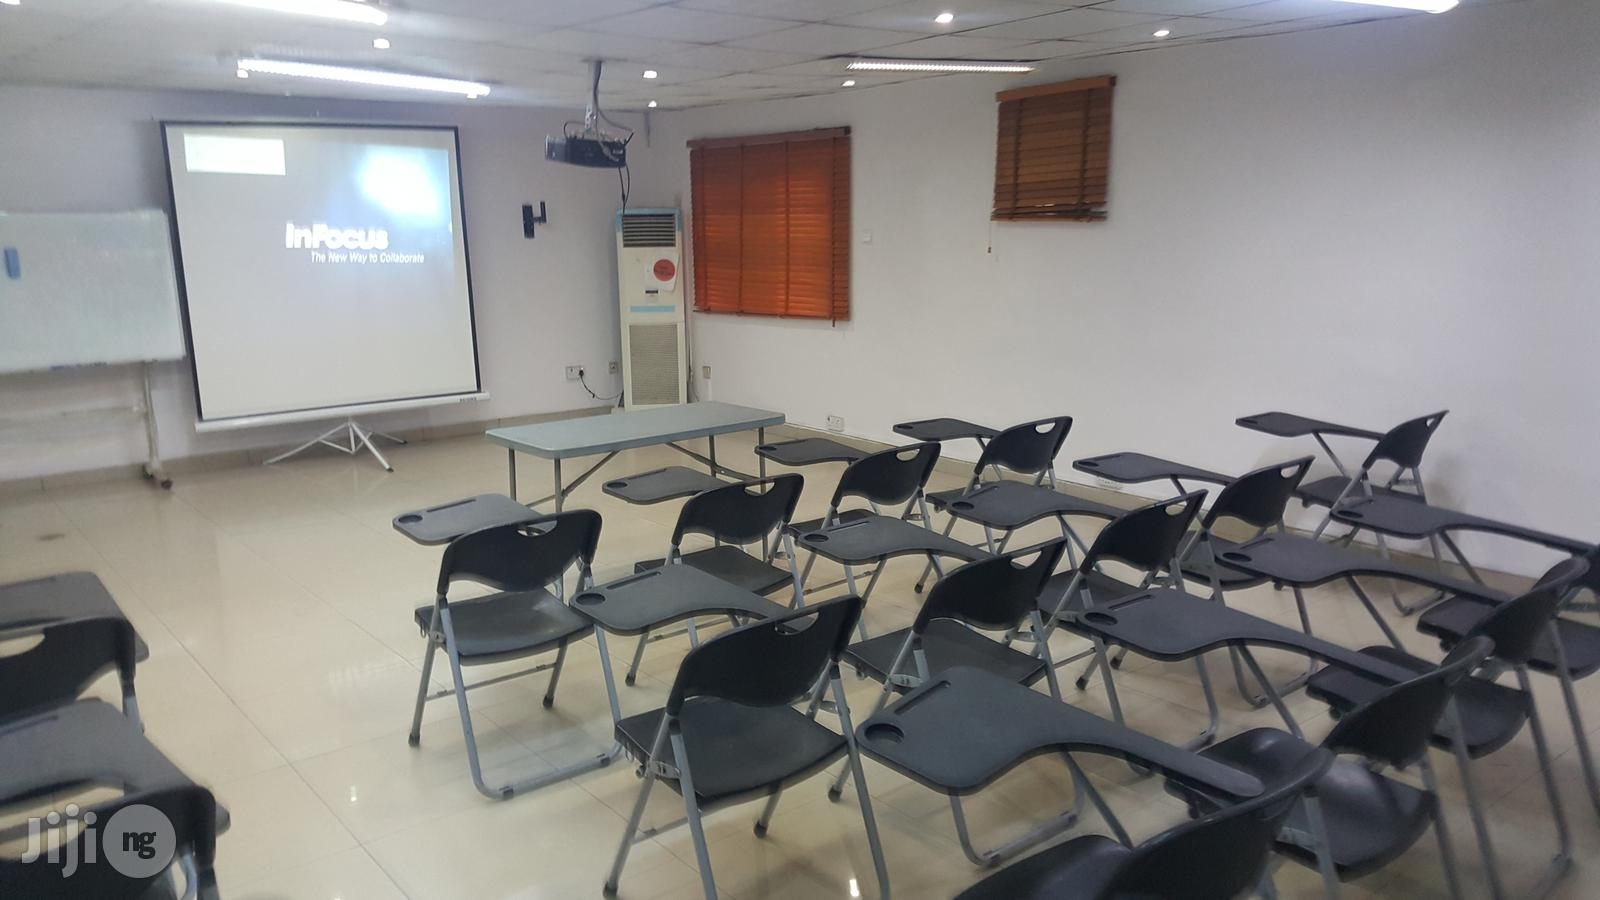 Training Hall For Rent. | Event centres, Venues and Workstations for sale in Surulere, Lagos State, Nigeria